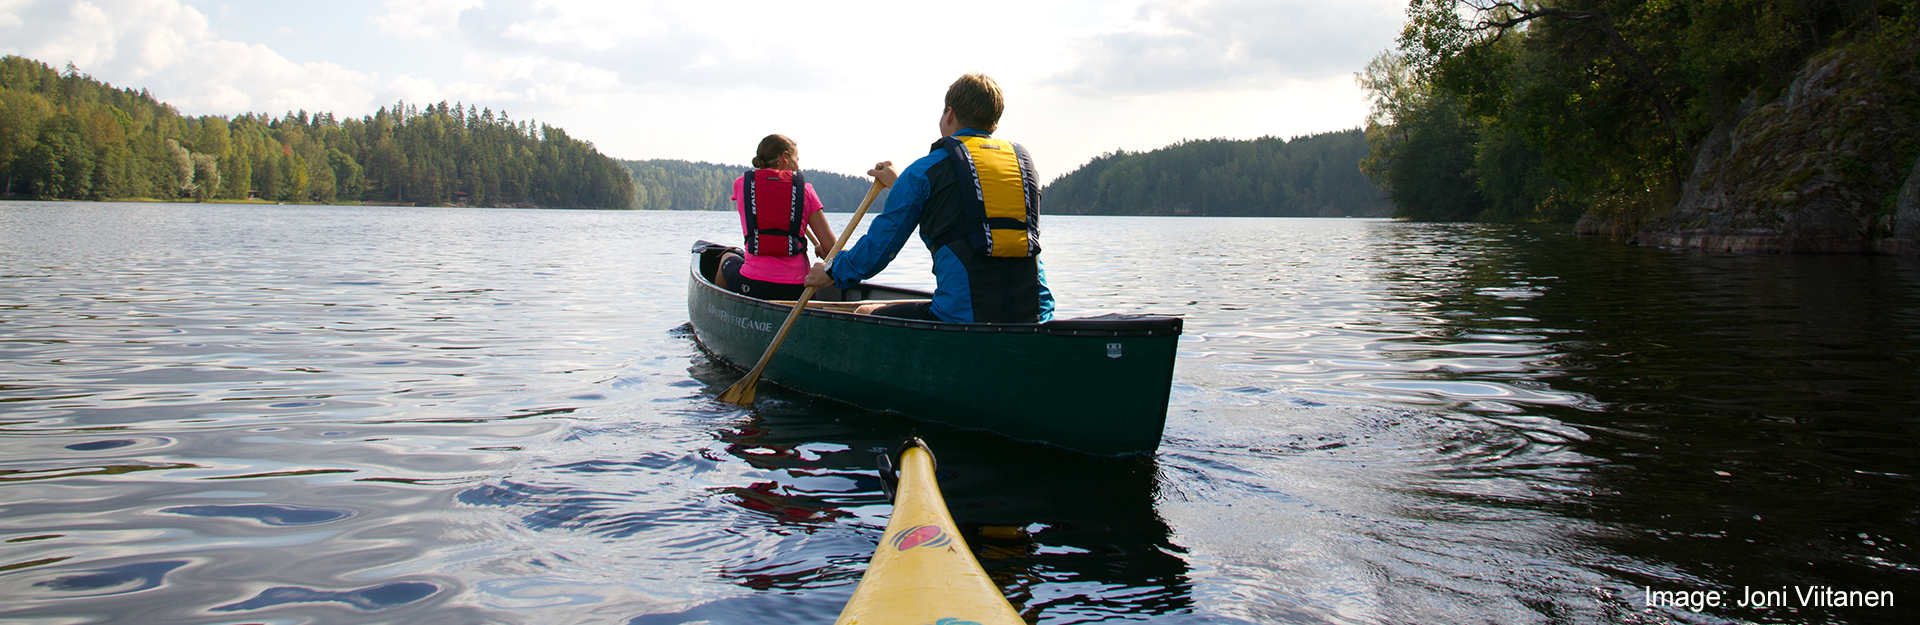 Espoo's nature activities offer great health and wellbeing benefits.